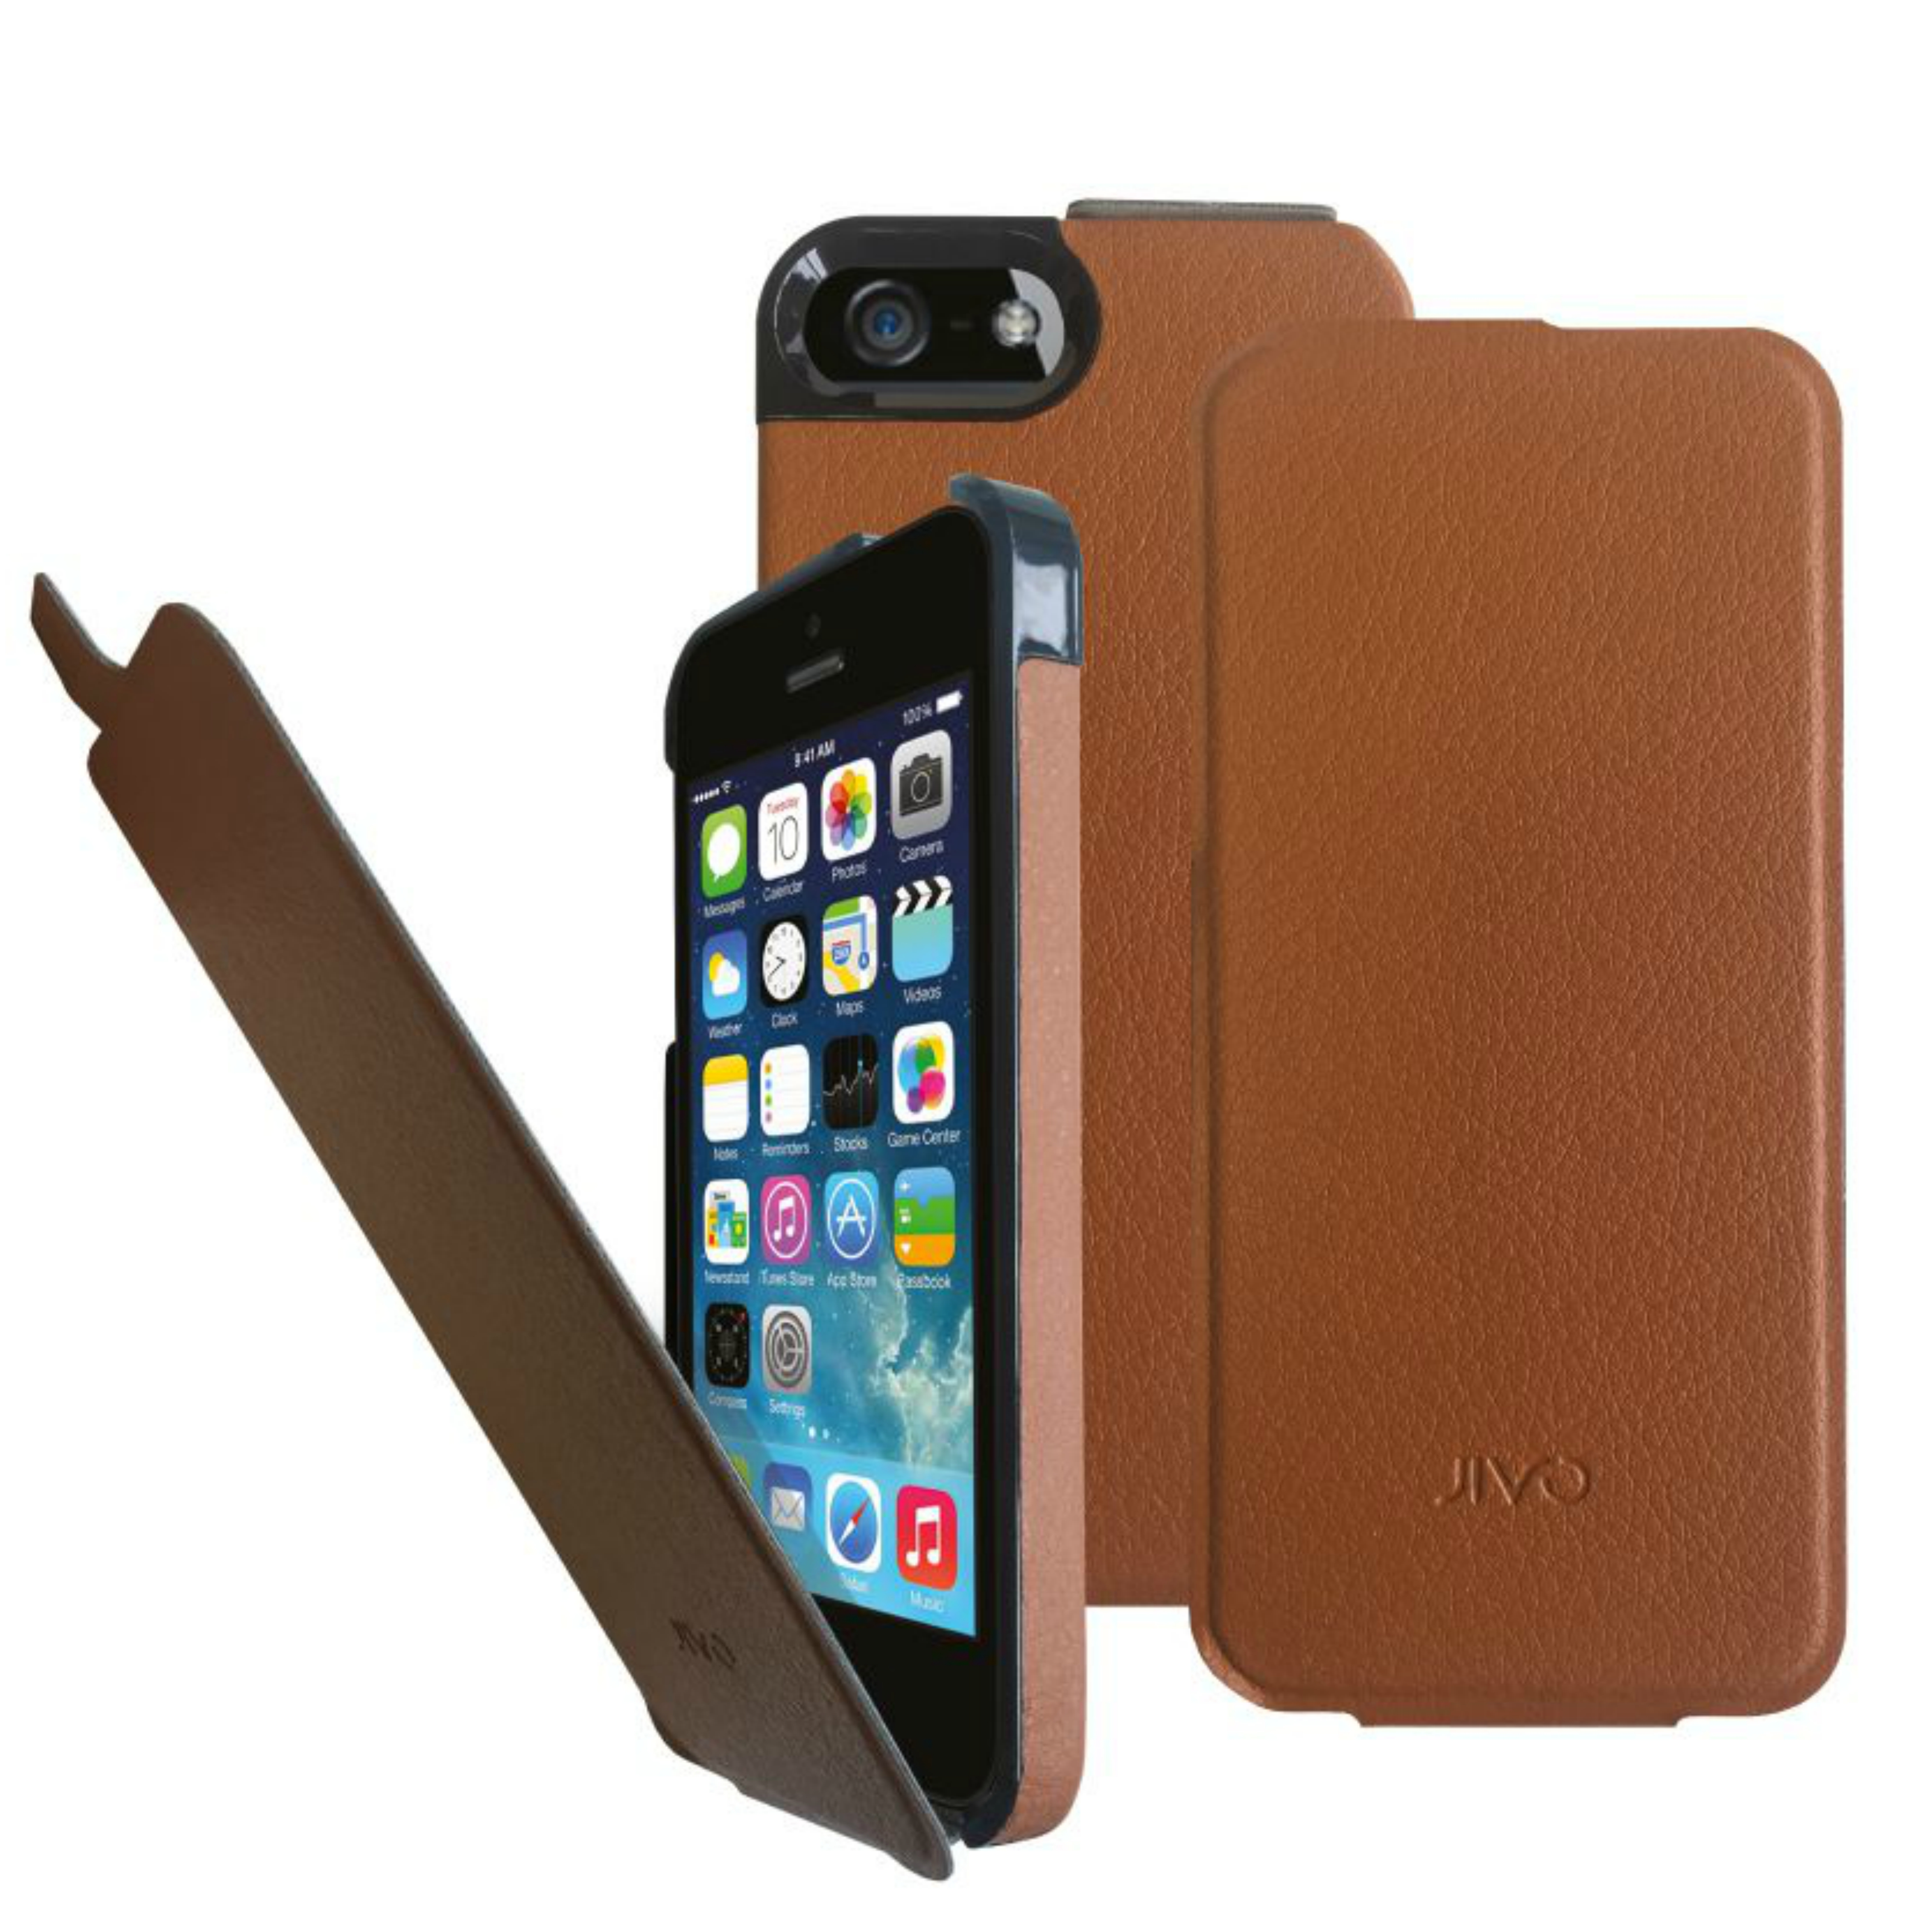 Jivo Flip Folio Protective Case Cover|Synthetic Leather|Lightweight|iPhone 5/5s|